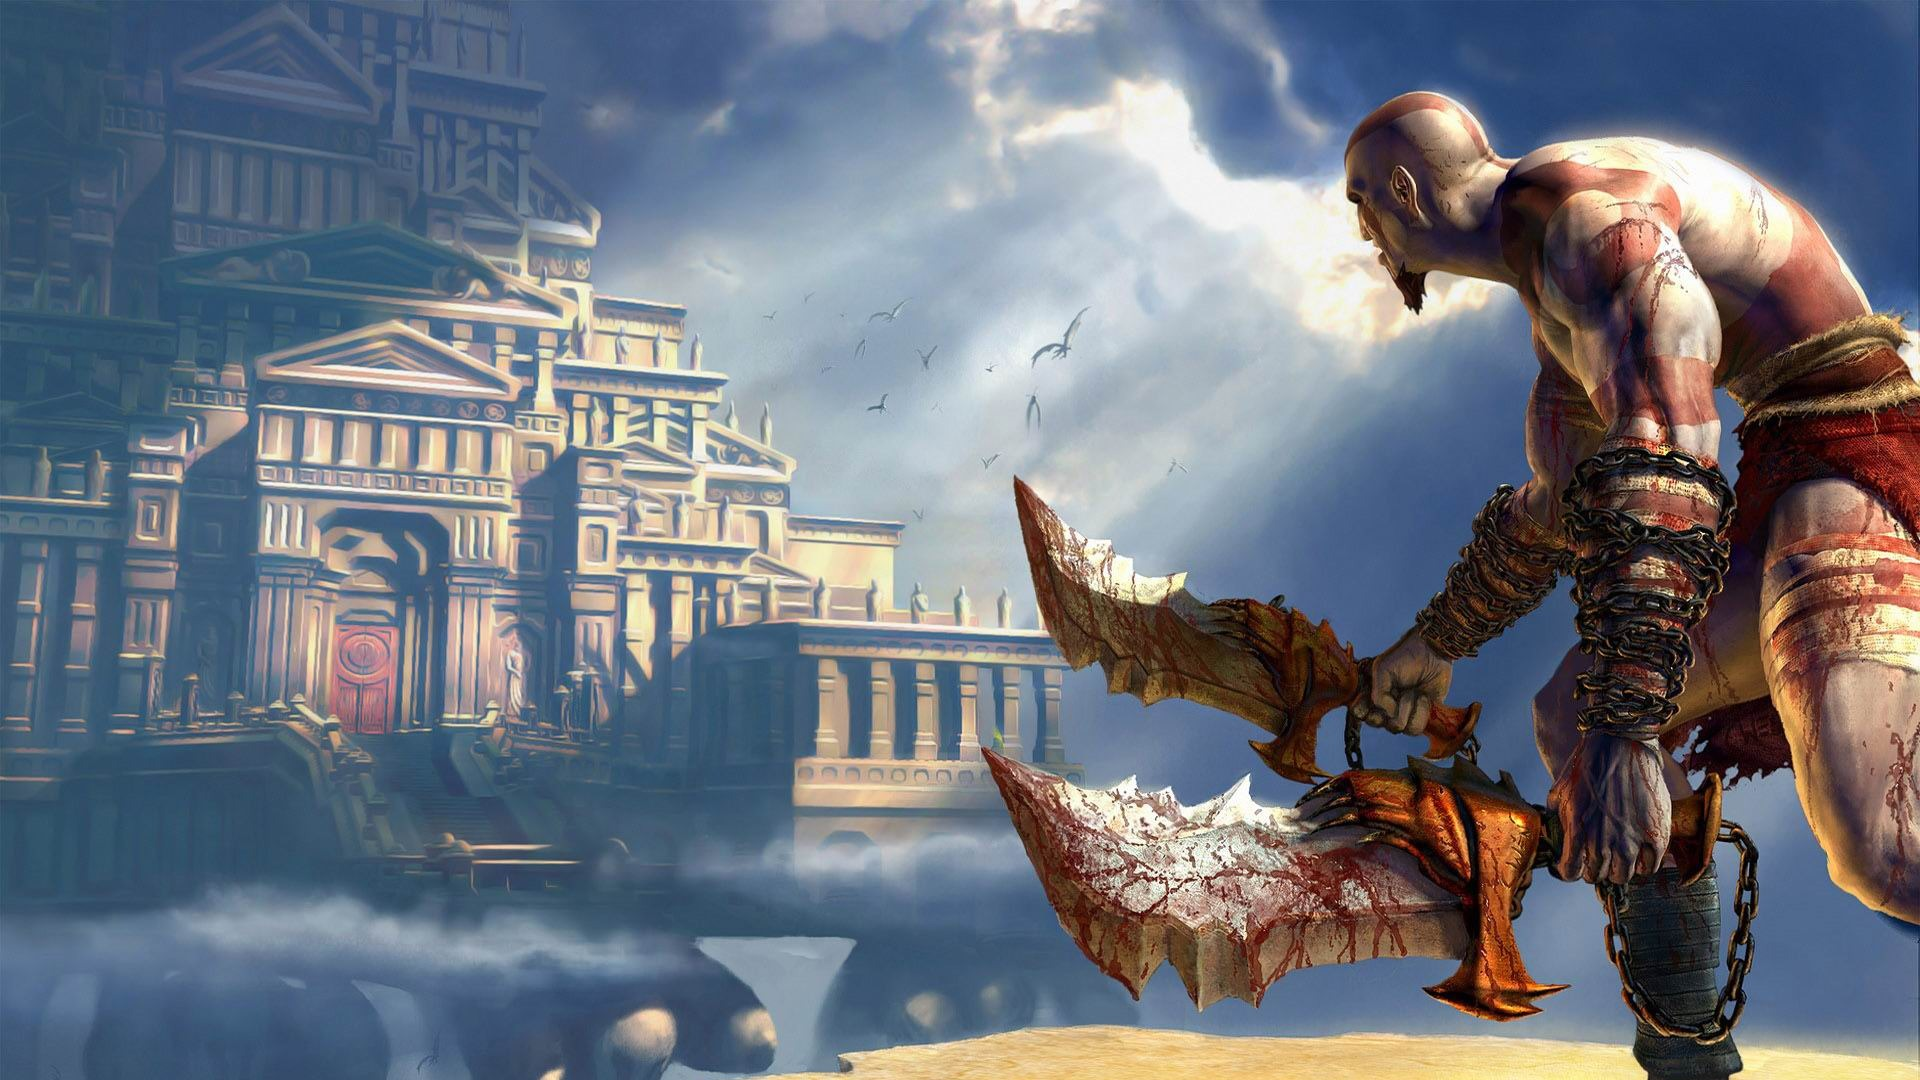 God Of War Hd Game Wallpaper Avance 10wallpapercom